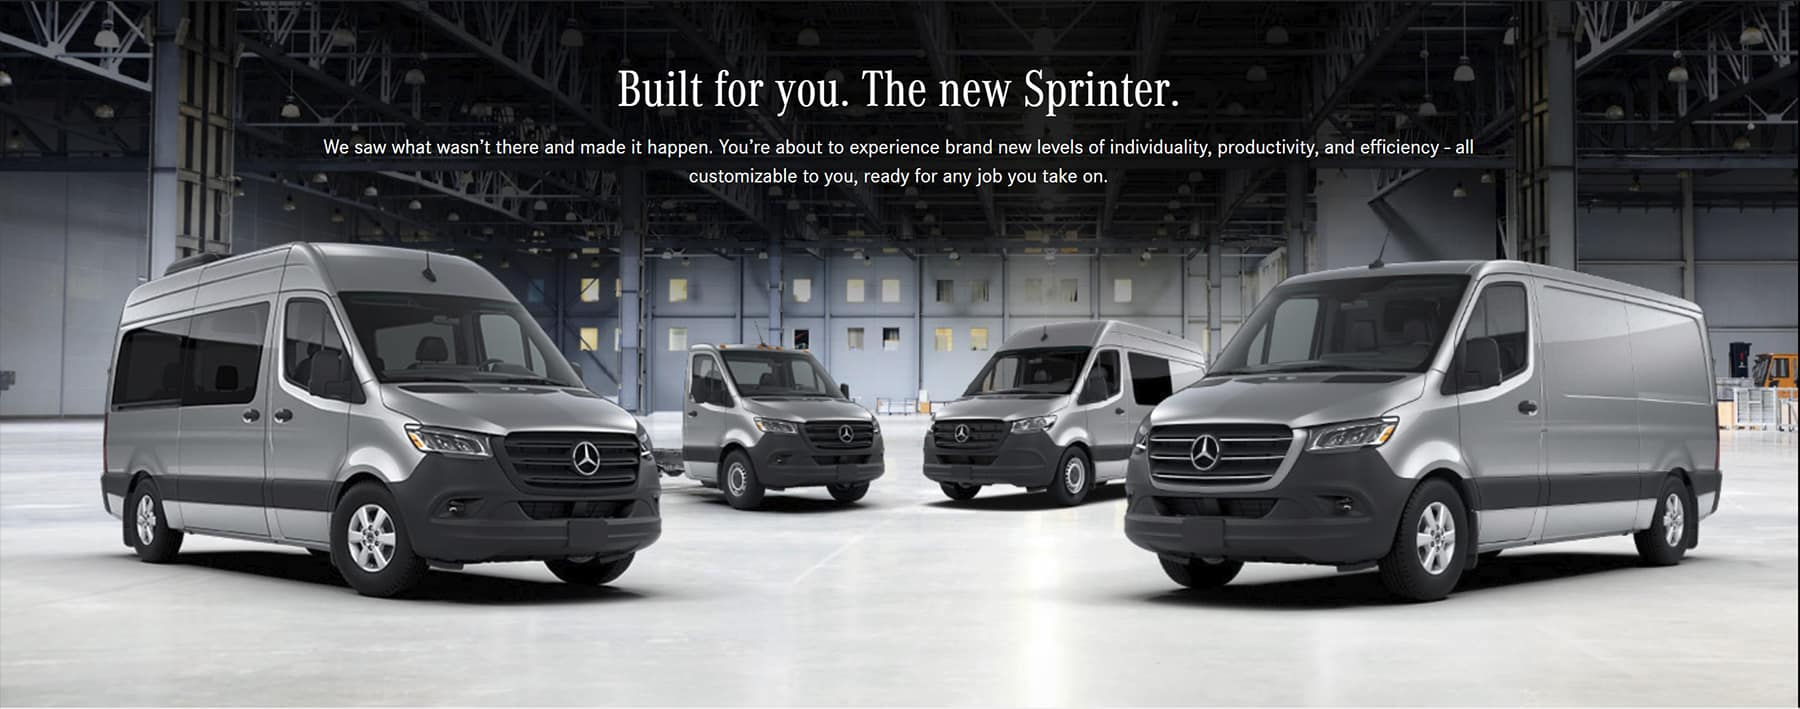 3f563ad28e New Mercedes-Benz Sprinter Van for Sale in The Woodlands